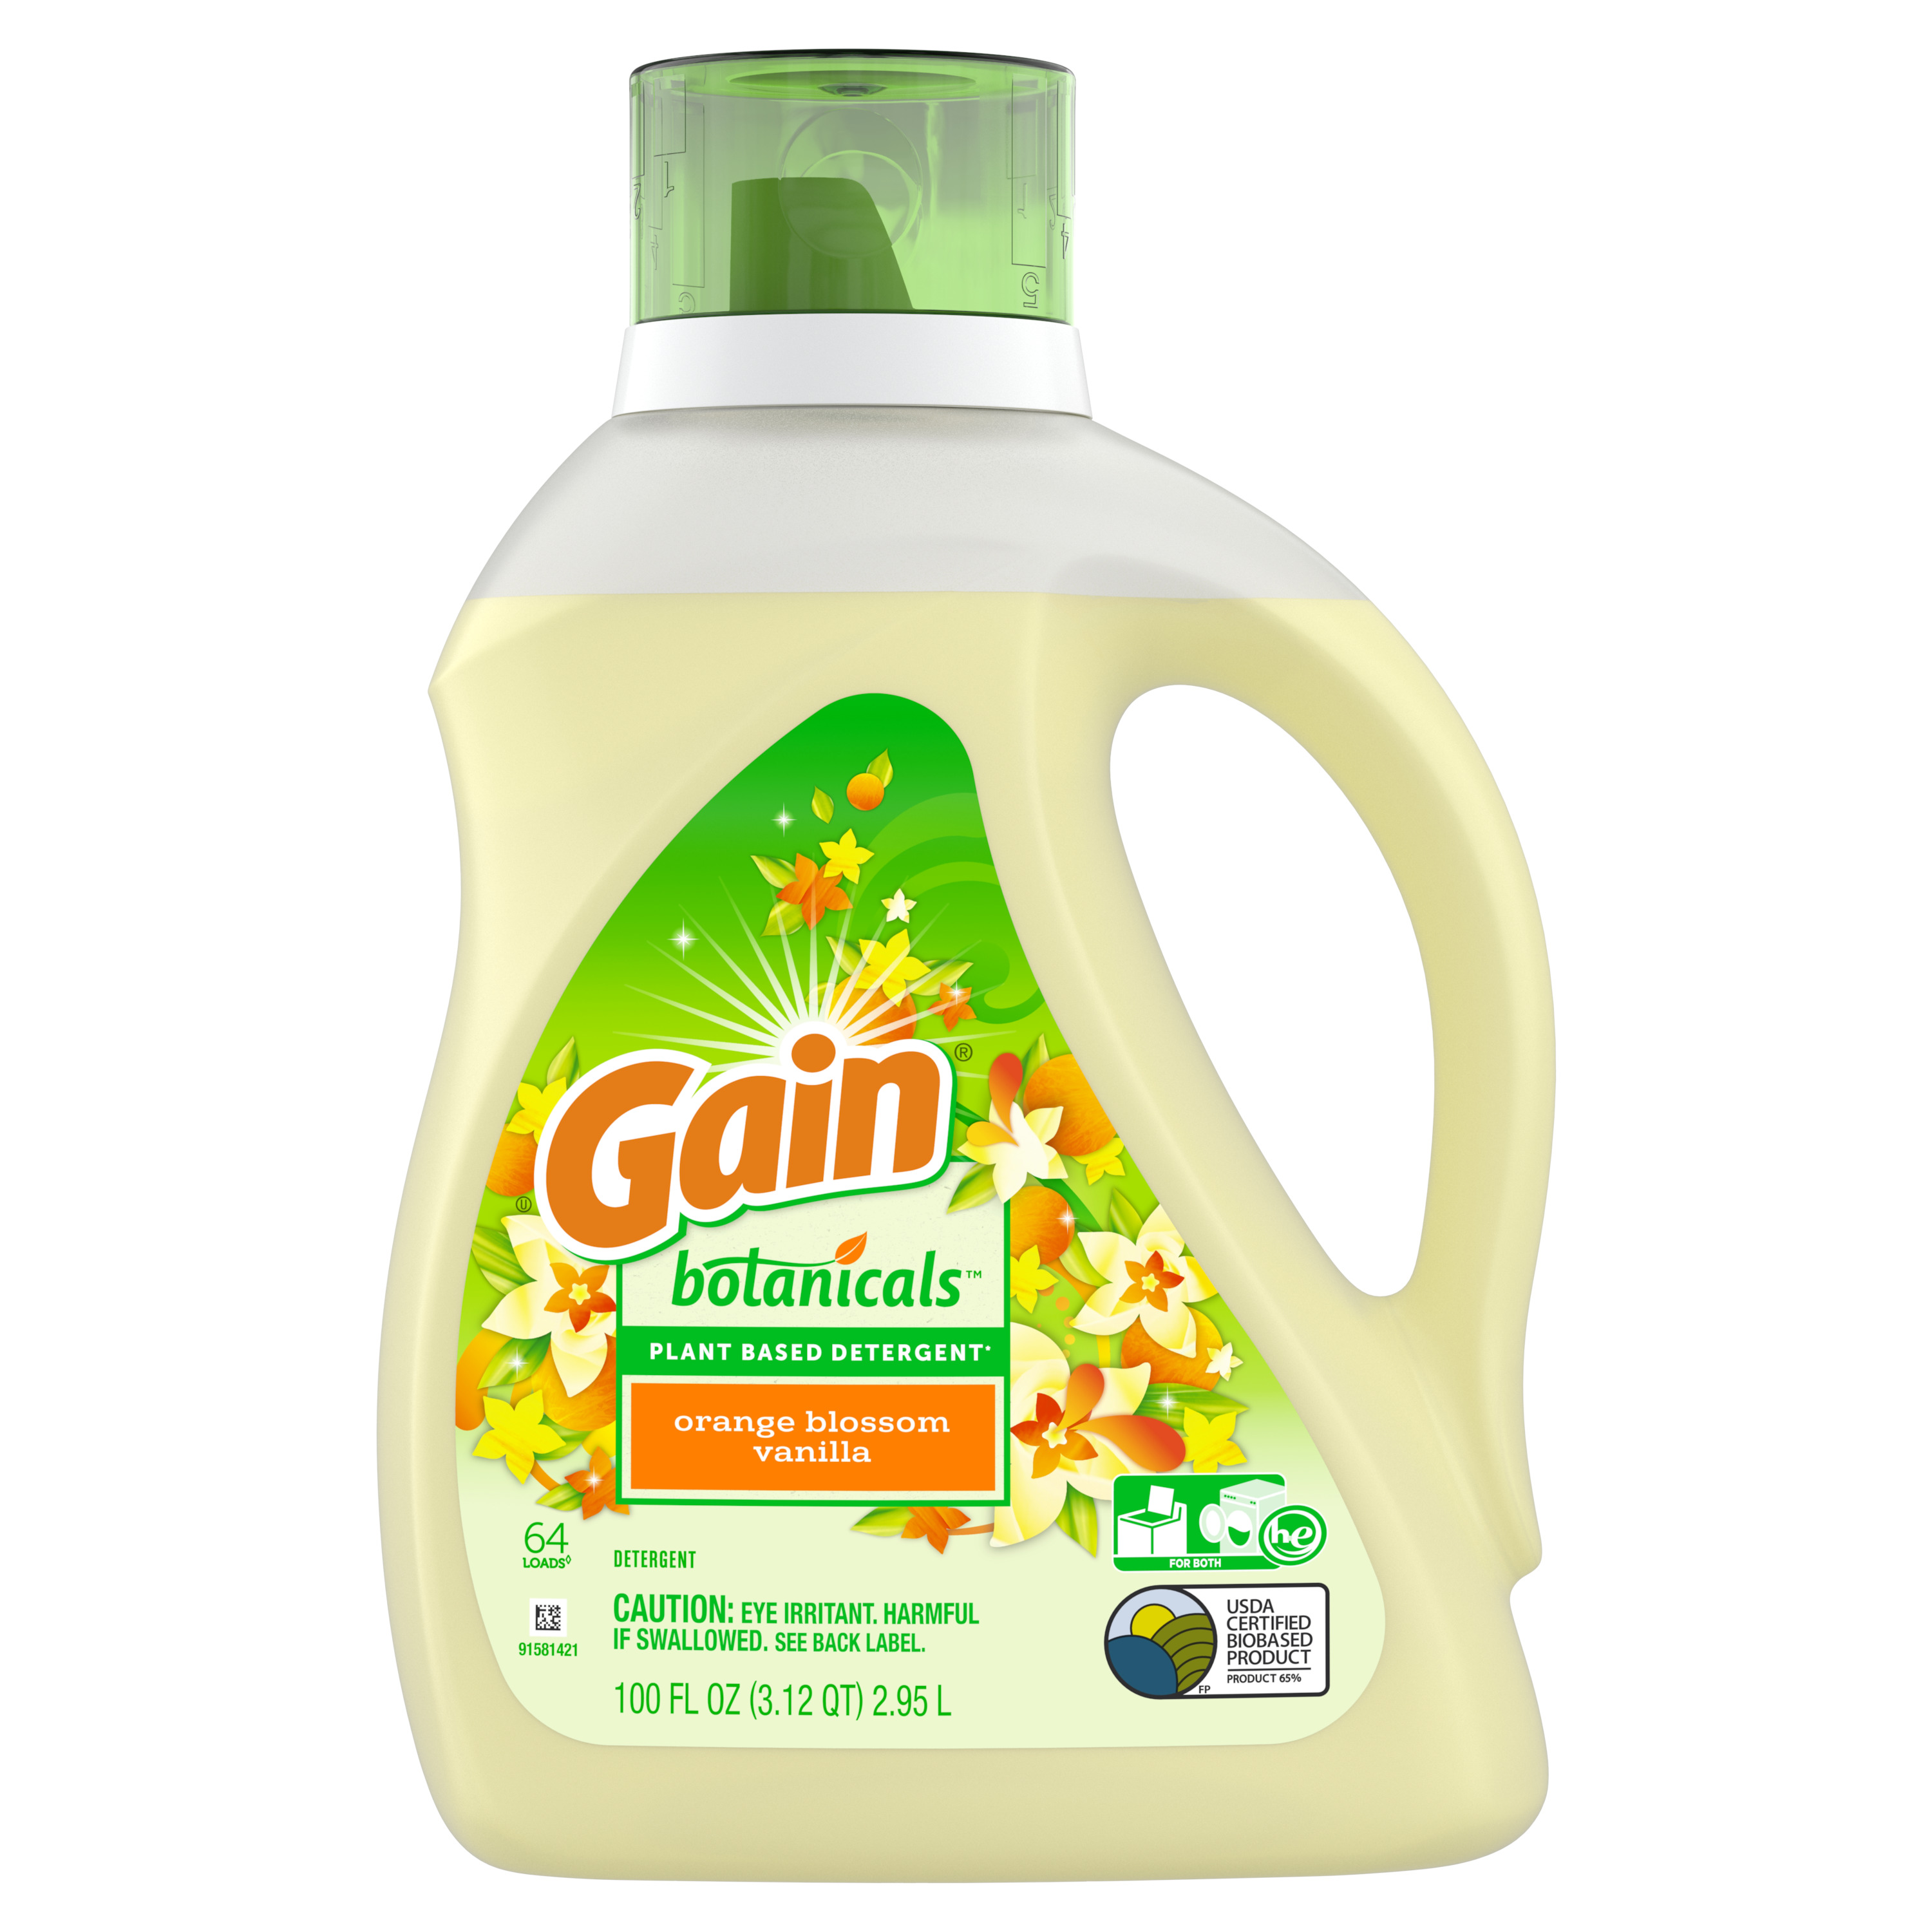 Gain Botanicals Plant Based Laundry Detergent, Orange Blossom Vanilla, 64 Loads 100 fl oz